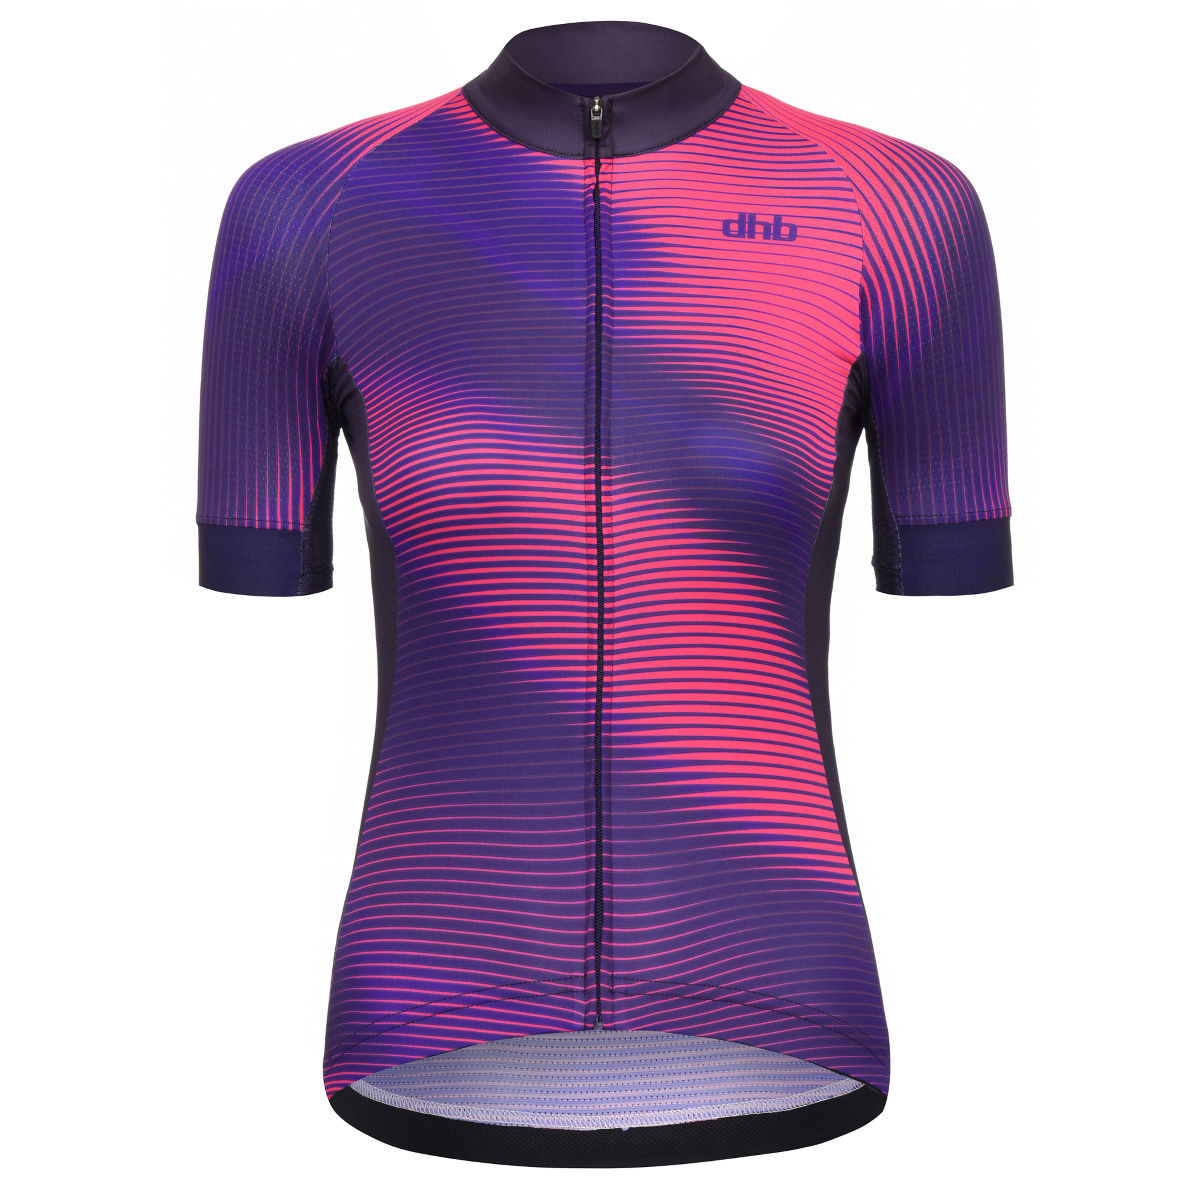 Maillot Femme dhb Aeron Speed Frequency (manches courtes) - UK 10